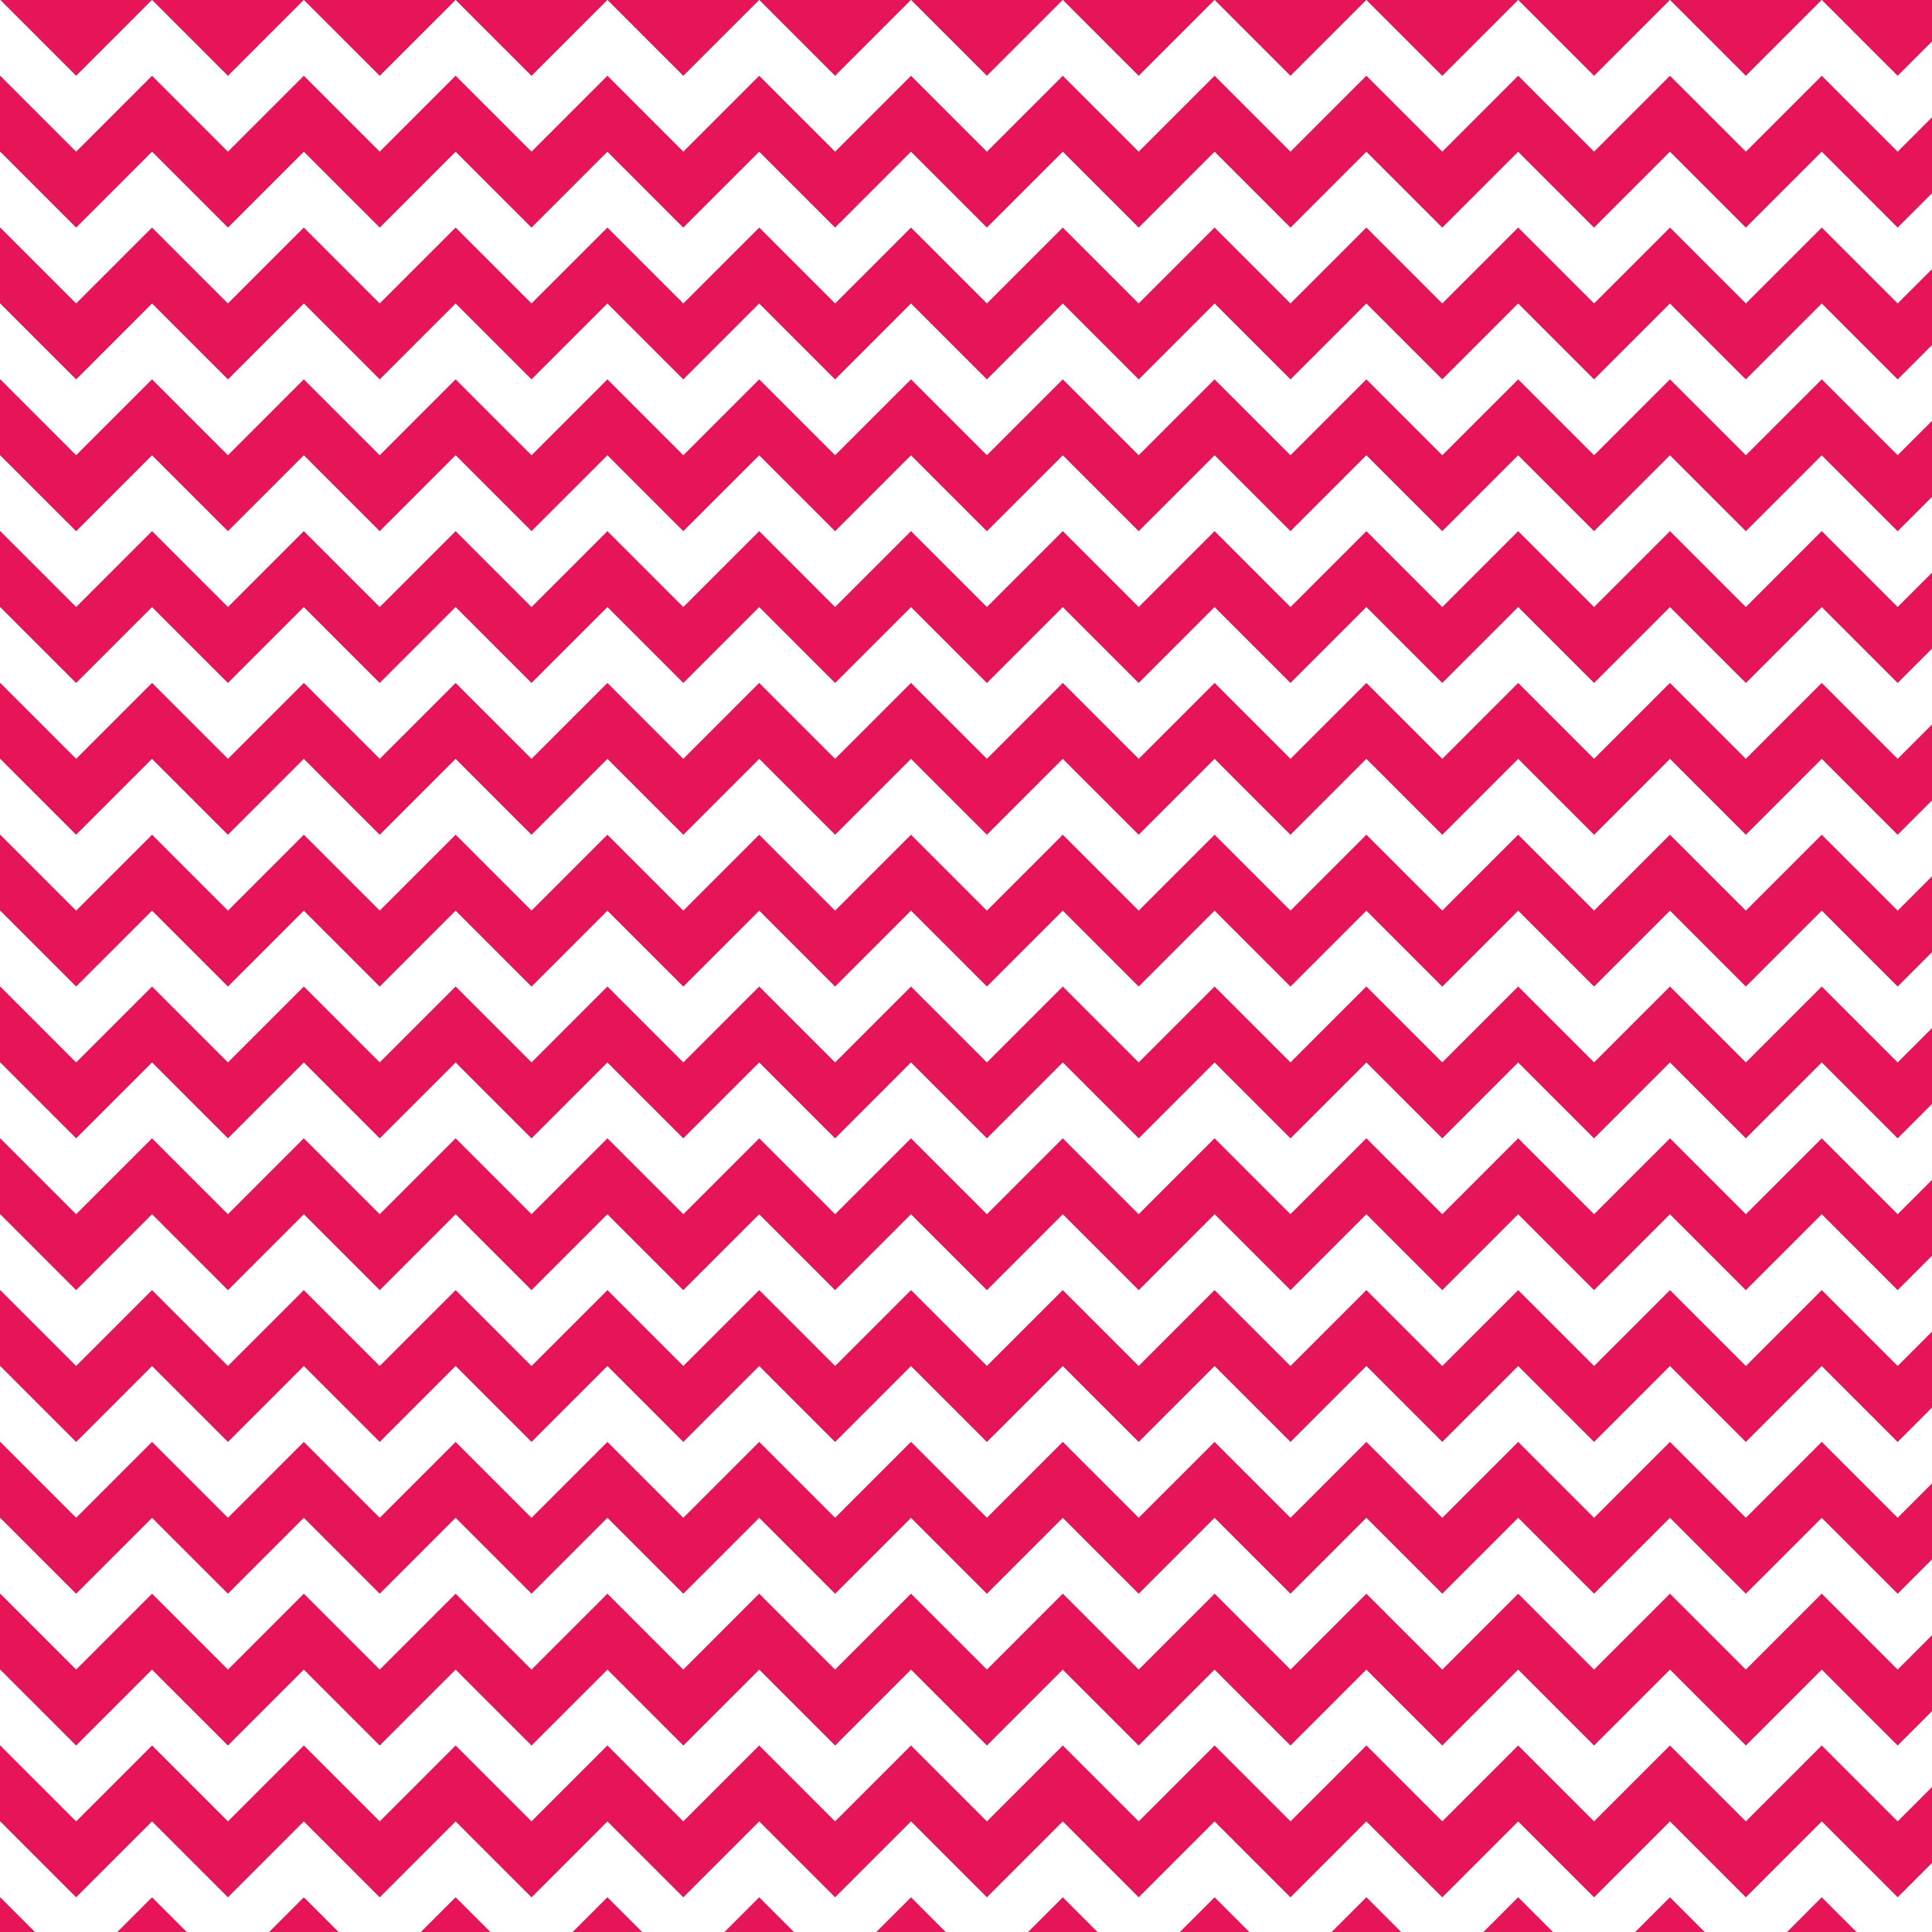 Bright and Cheerful Chevron Digital Paper-Seamless example image 6